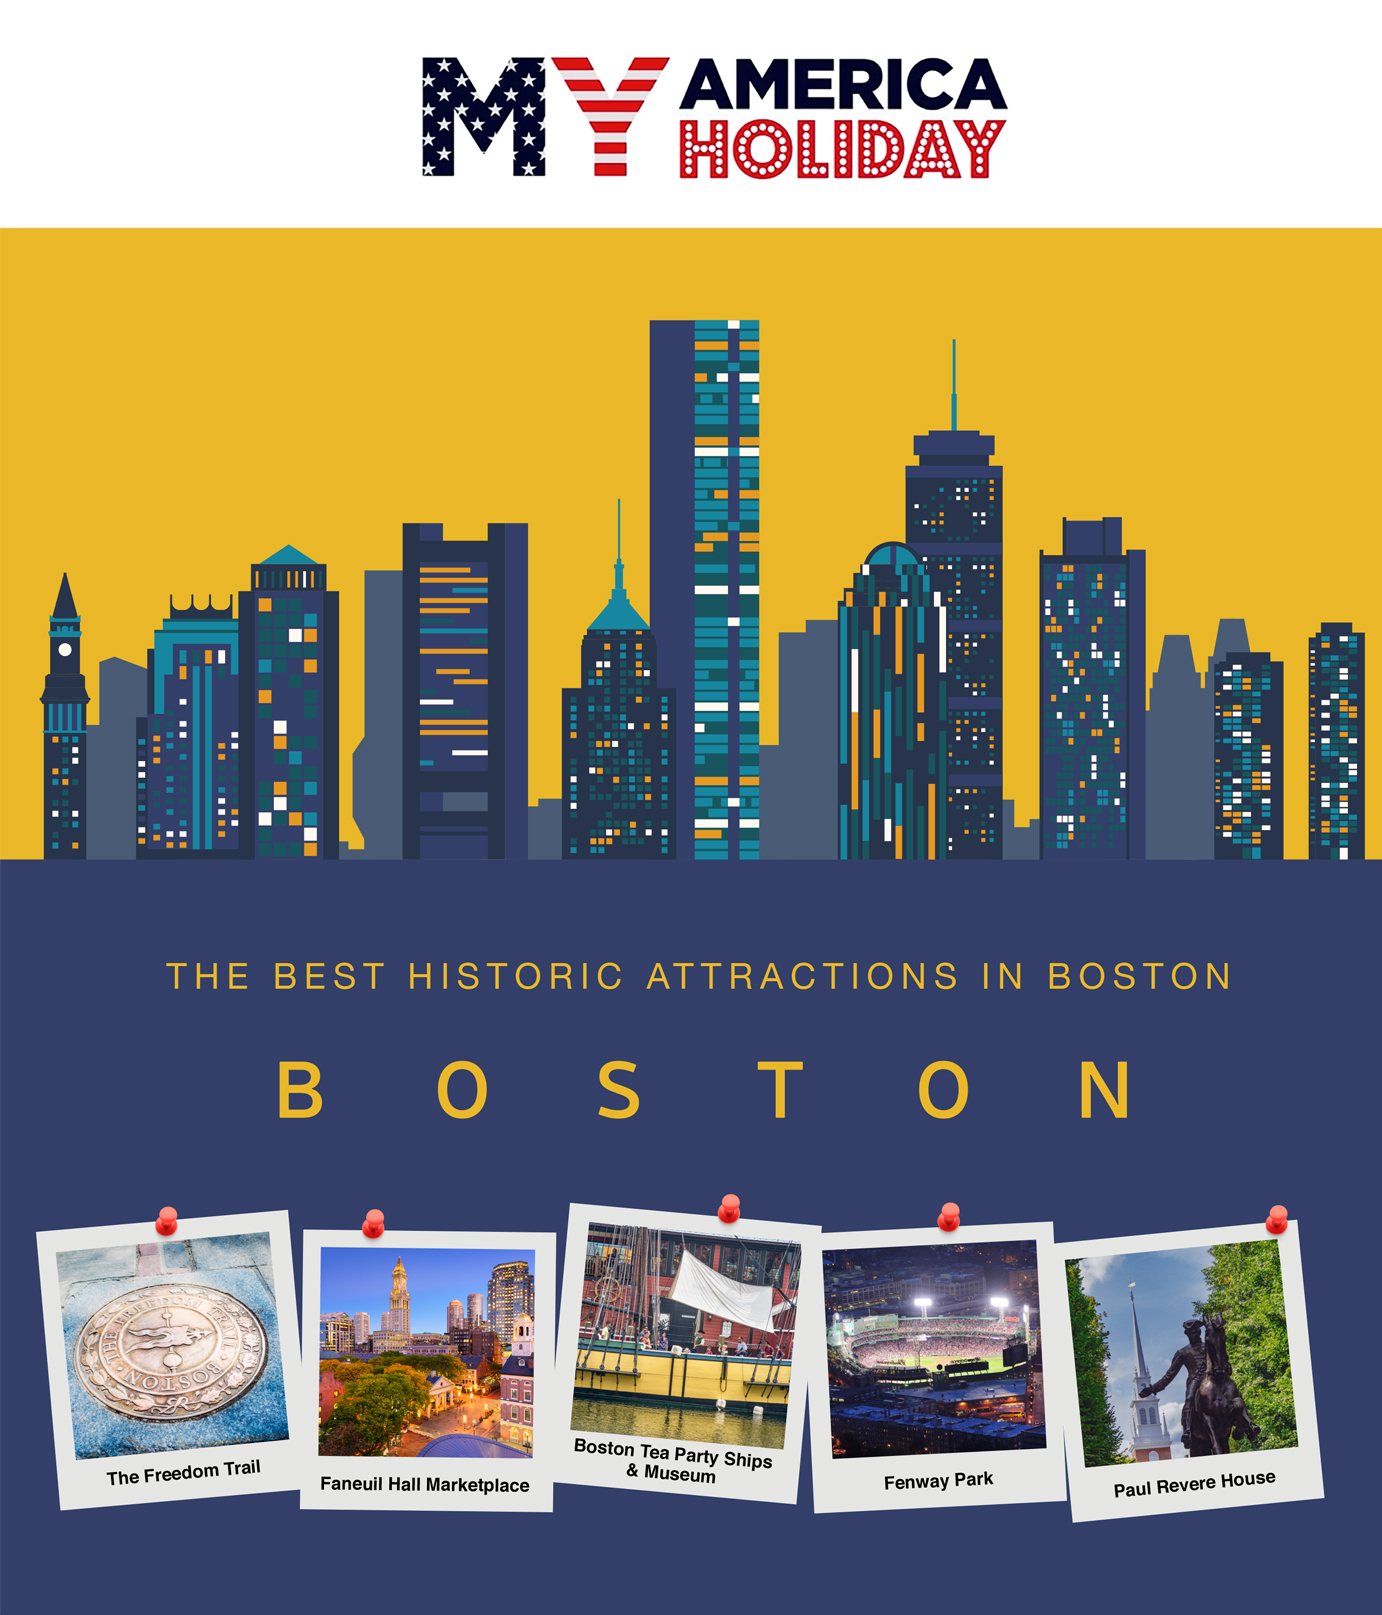 The best historic attractions in Boston